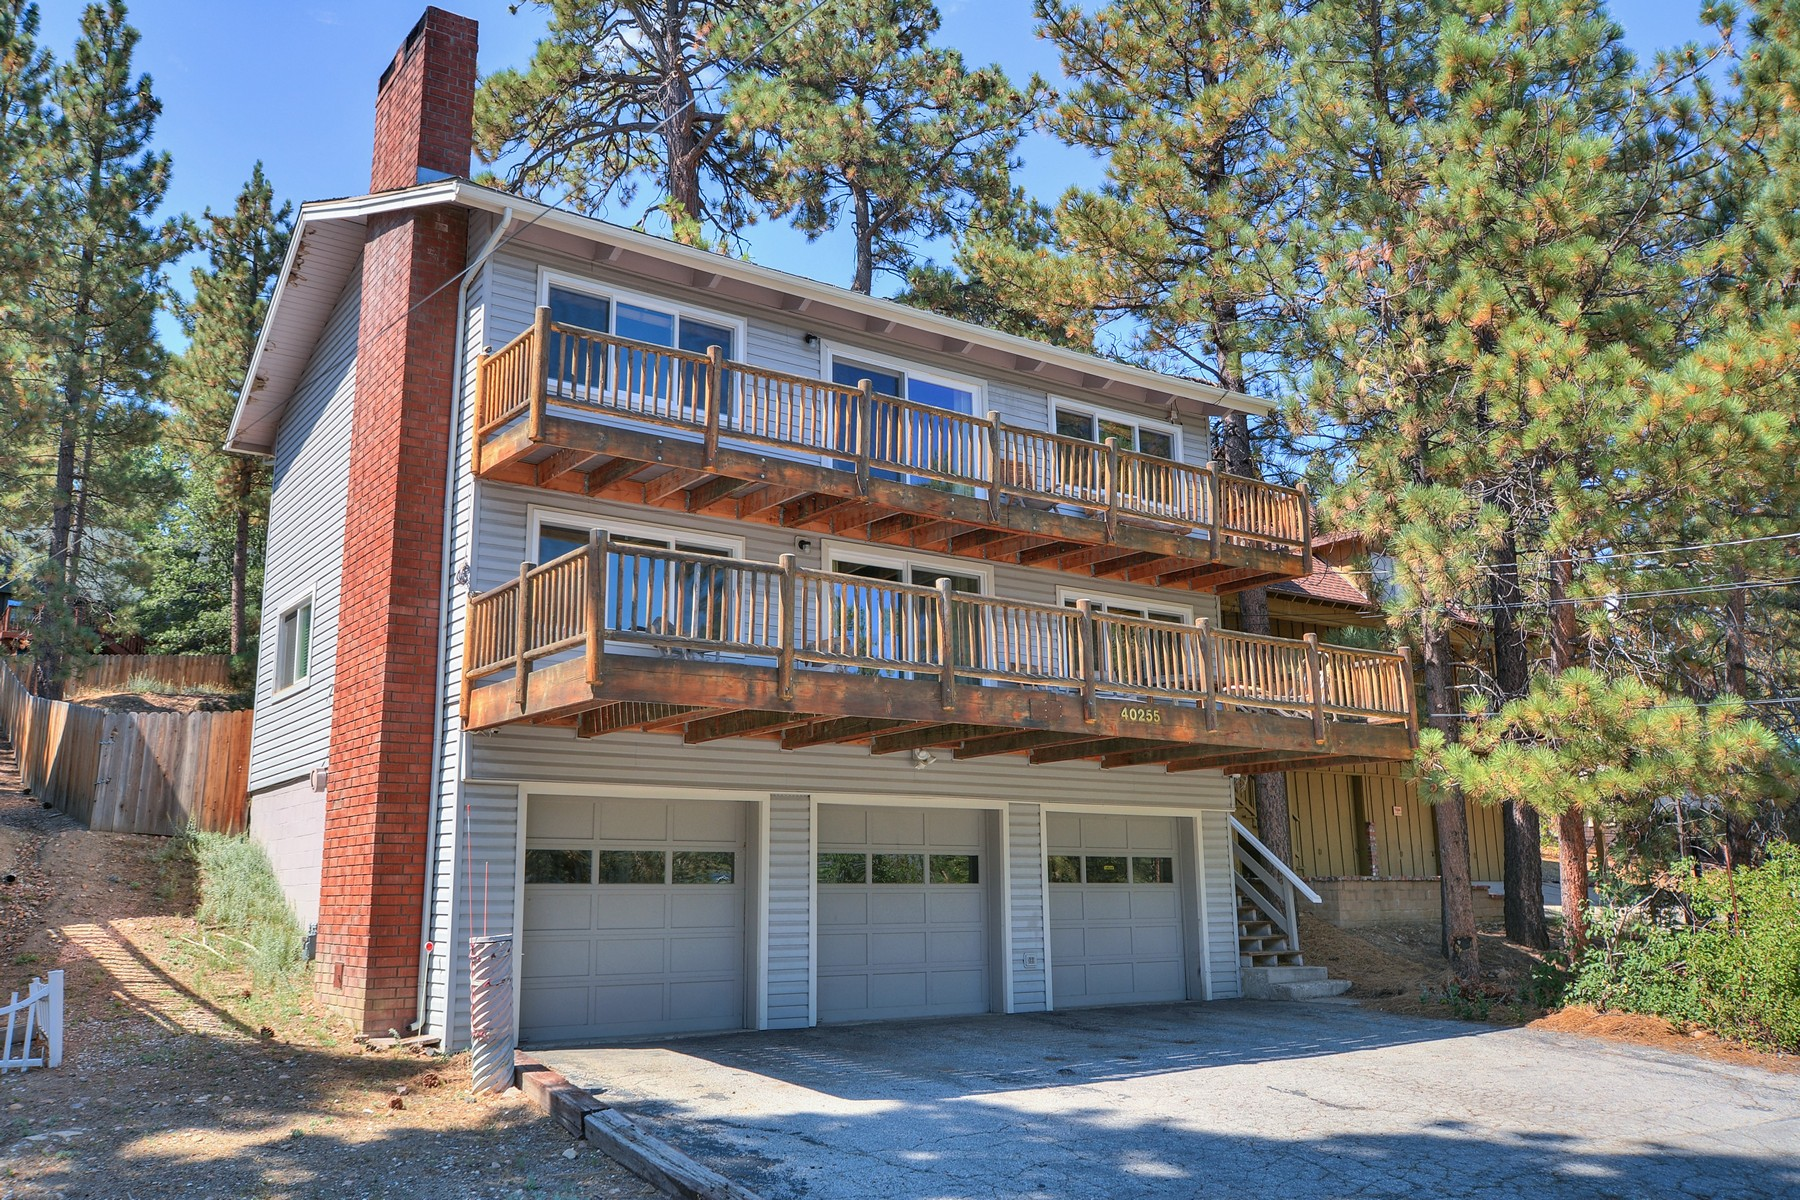 واحد منزل الأسرة للـ Sale في 40255 Lakeview Drive, Big Bear Lake, California, 92315 Big Bear Lake, California, 92315 United States